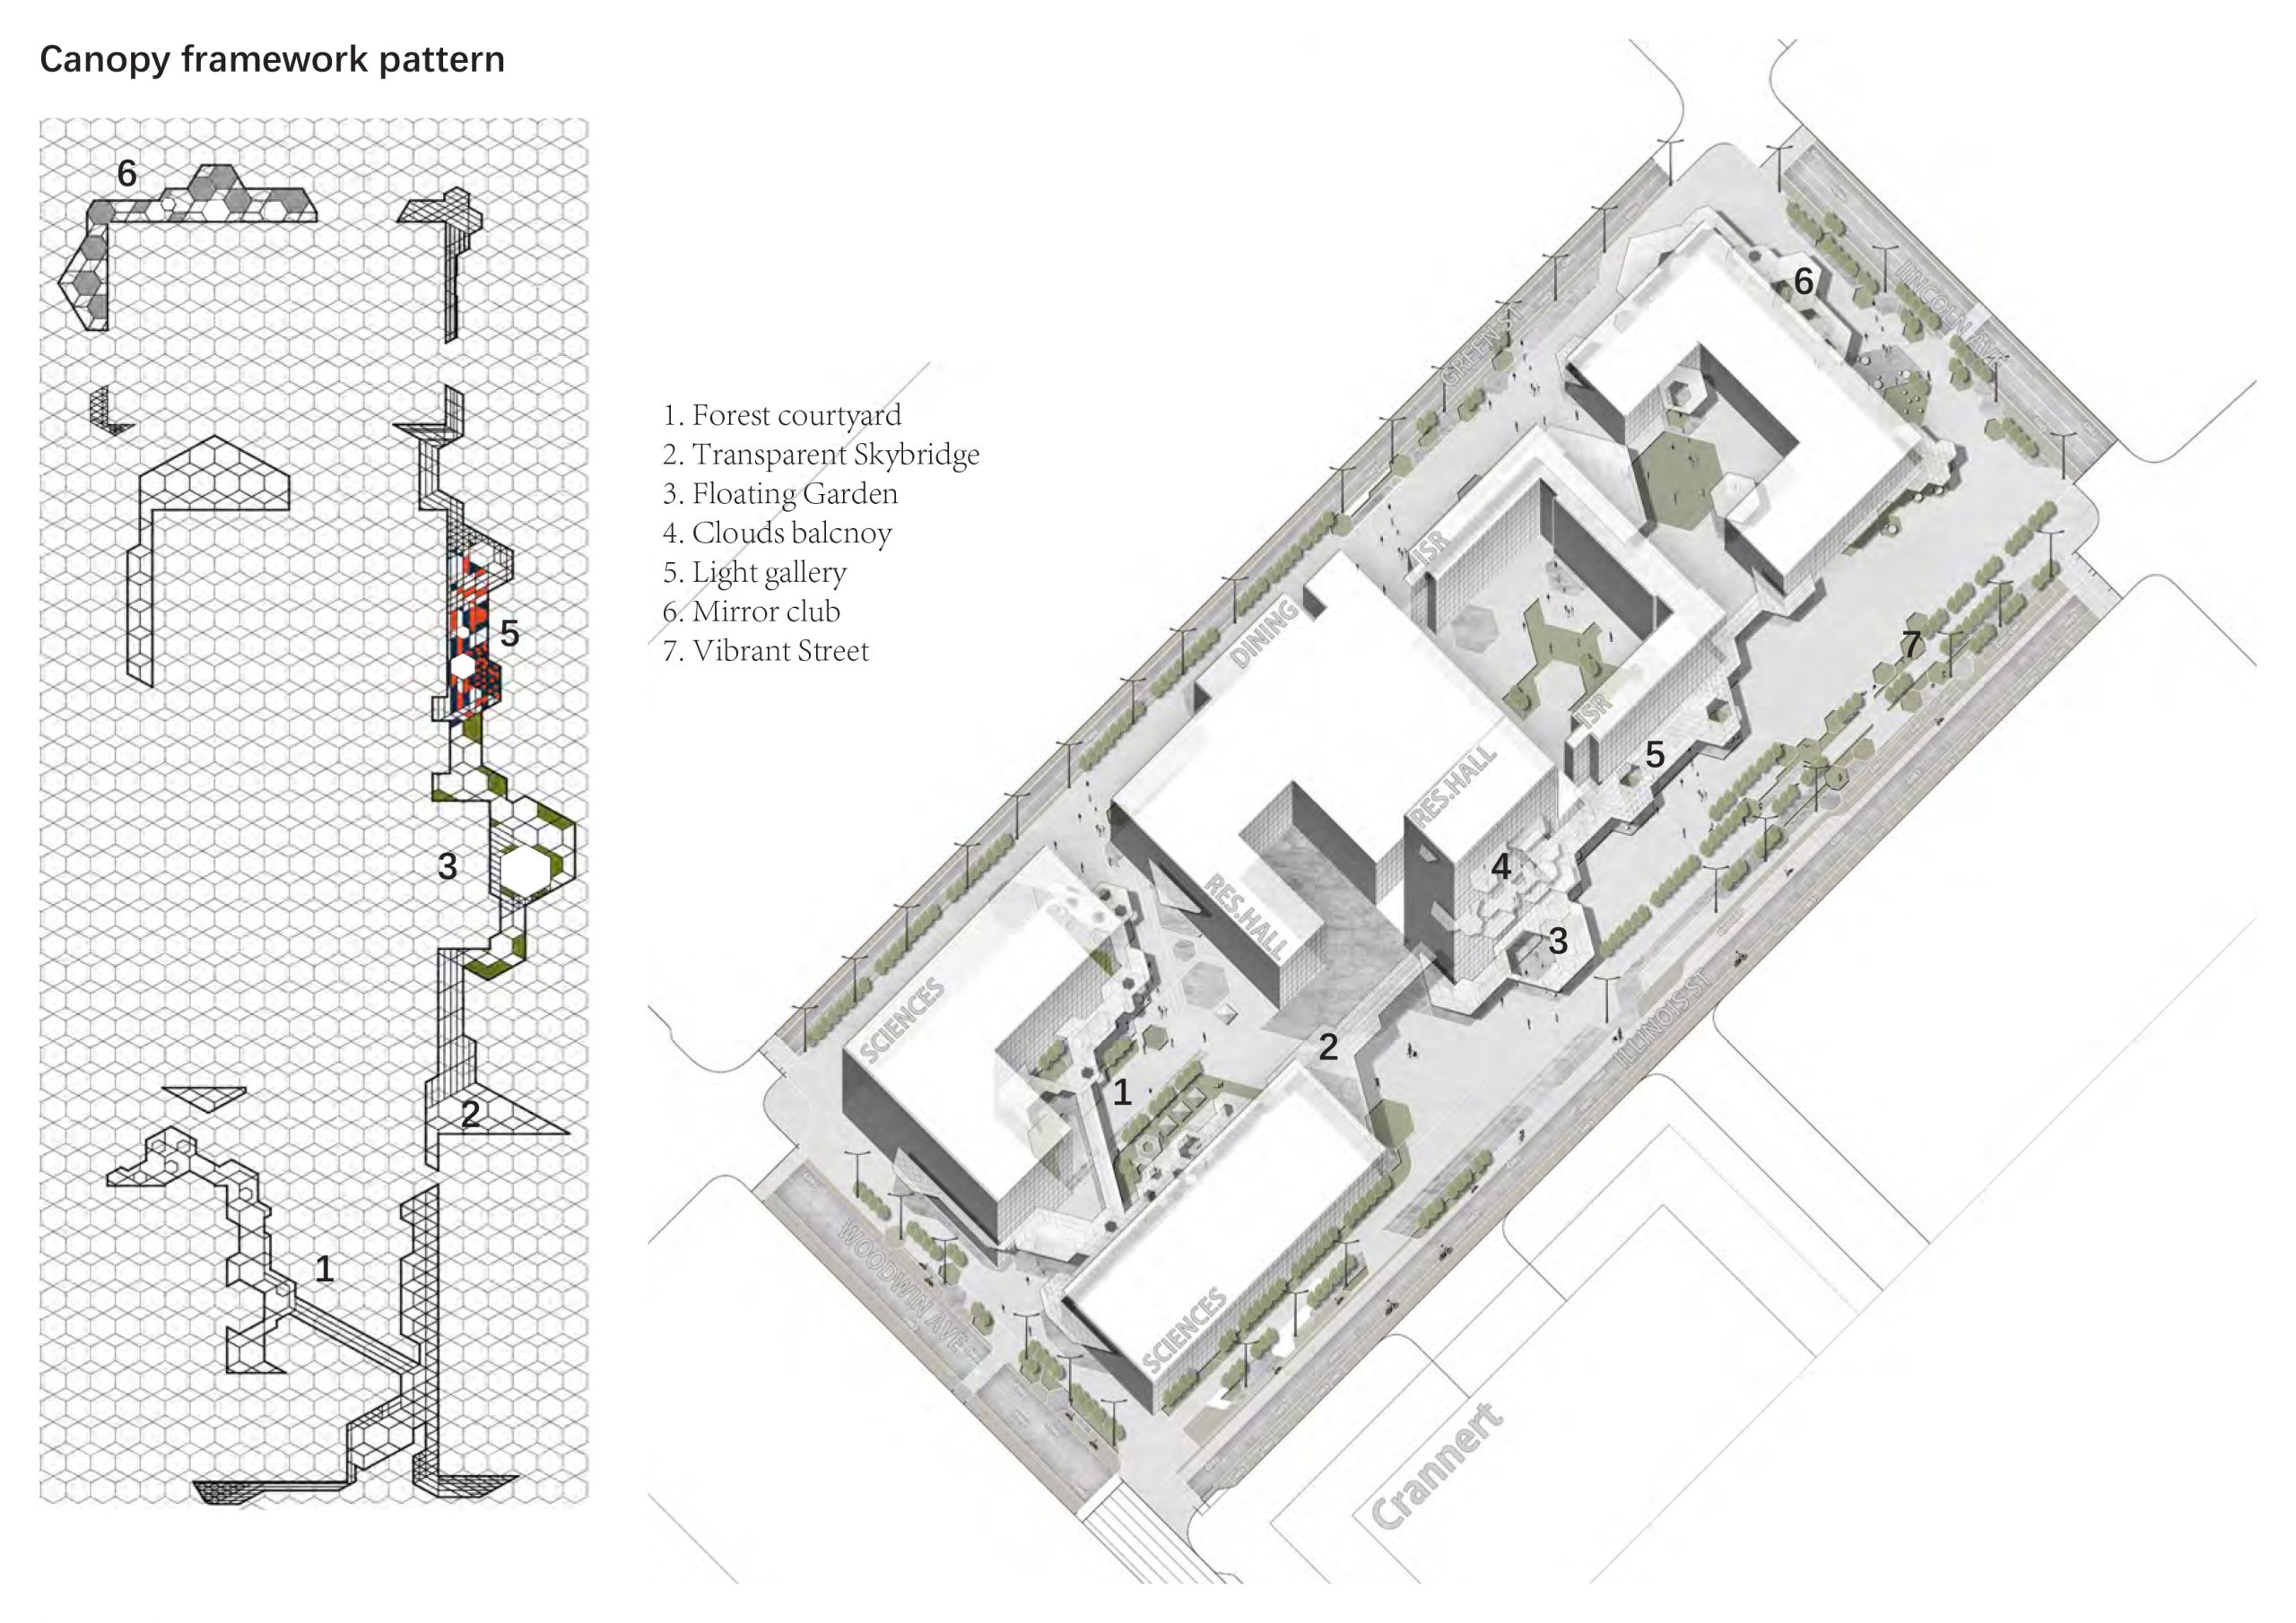 Plan and oblique site drawing with hexagonal grid underlay